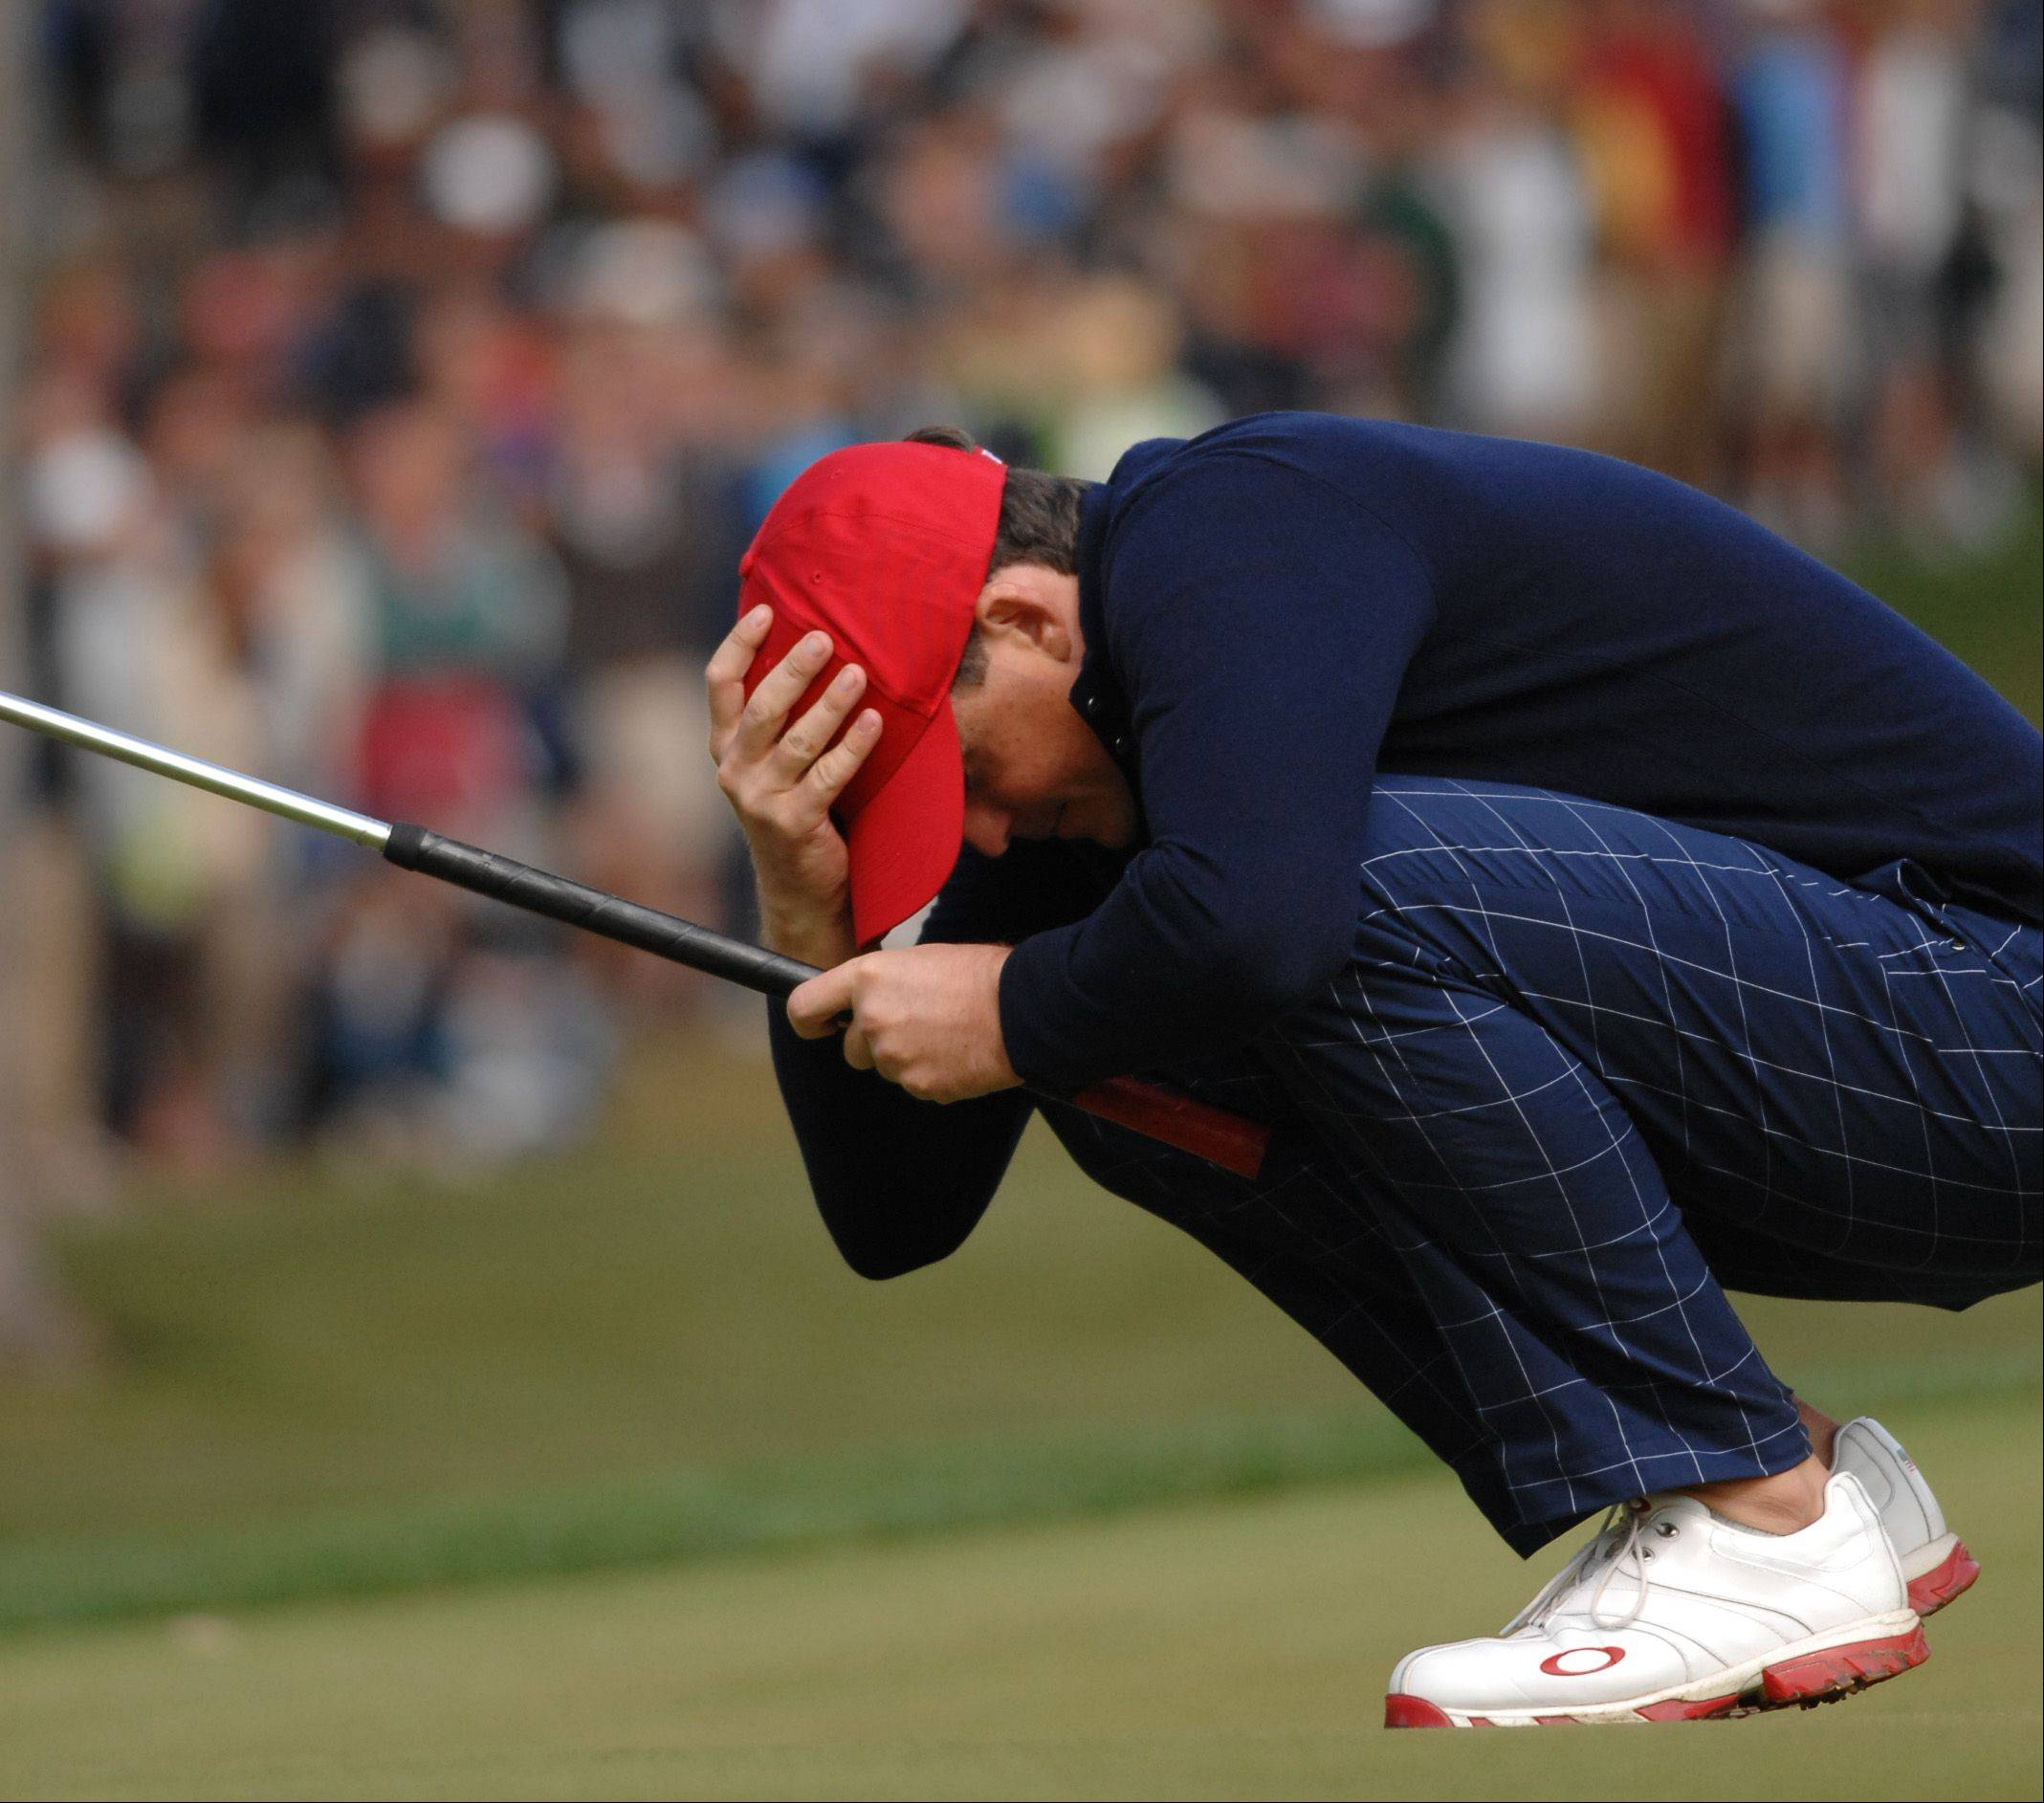 Keegan Bradley reacts to a missed putt on 14 Friday morning during foursome matches at Medinah.